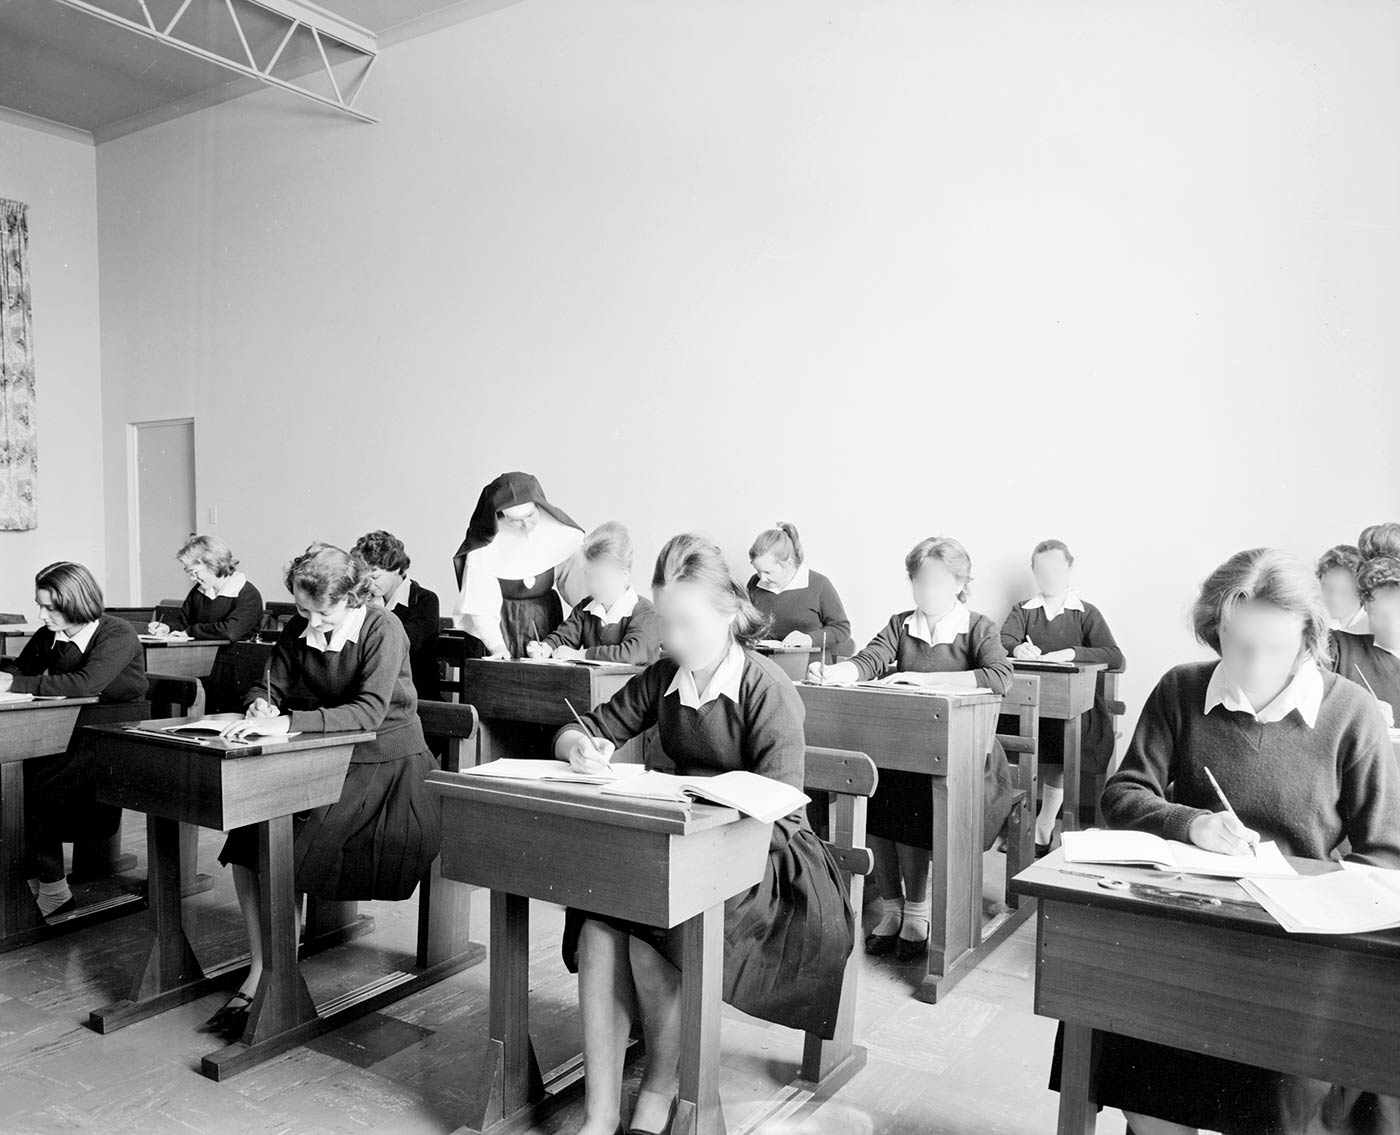 Black and white photo showing 12 teenage girls sitting at wooden desks, writing in exercise books. A nun wearing a dark habit and veil leans over one of the desks. - click to view larger image